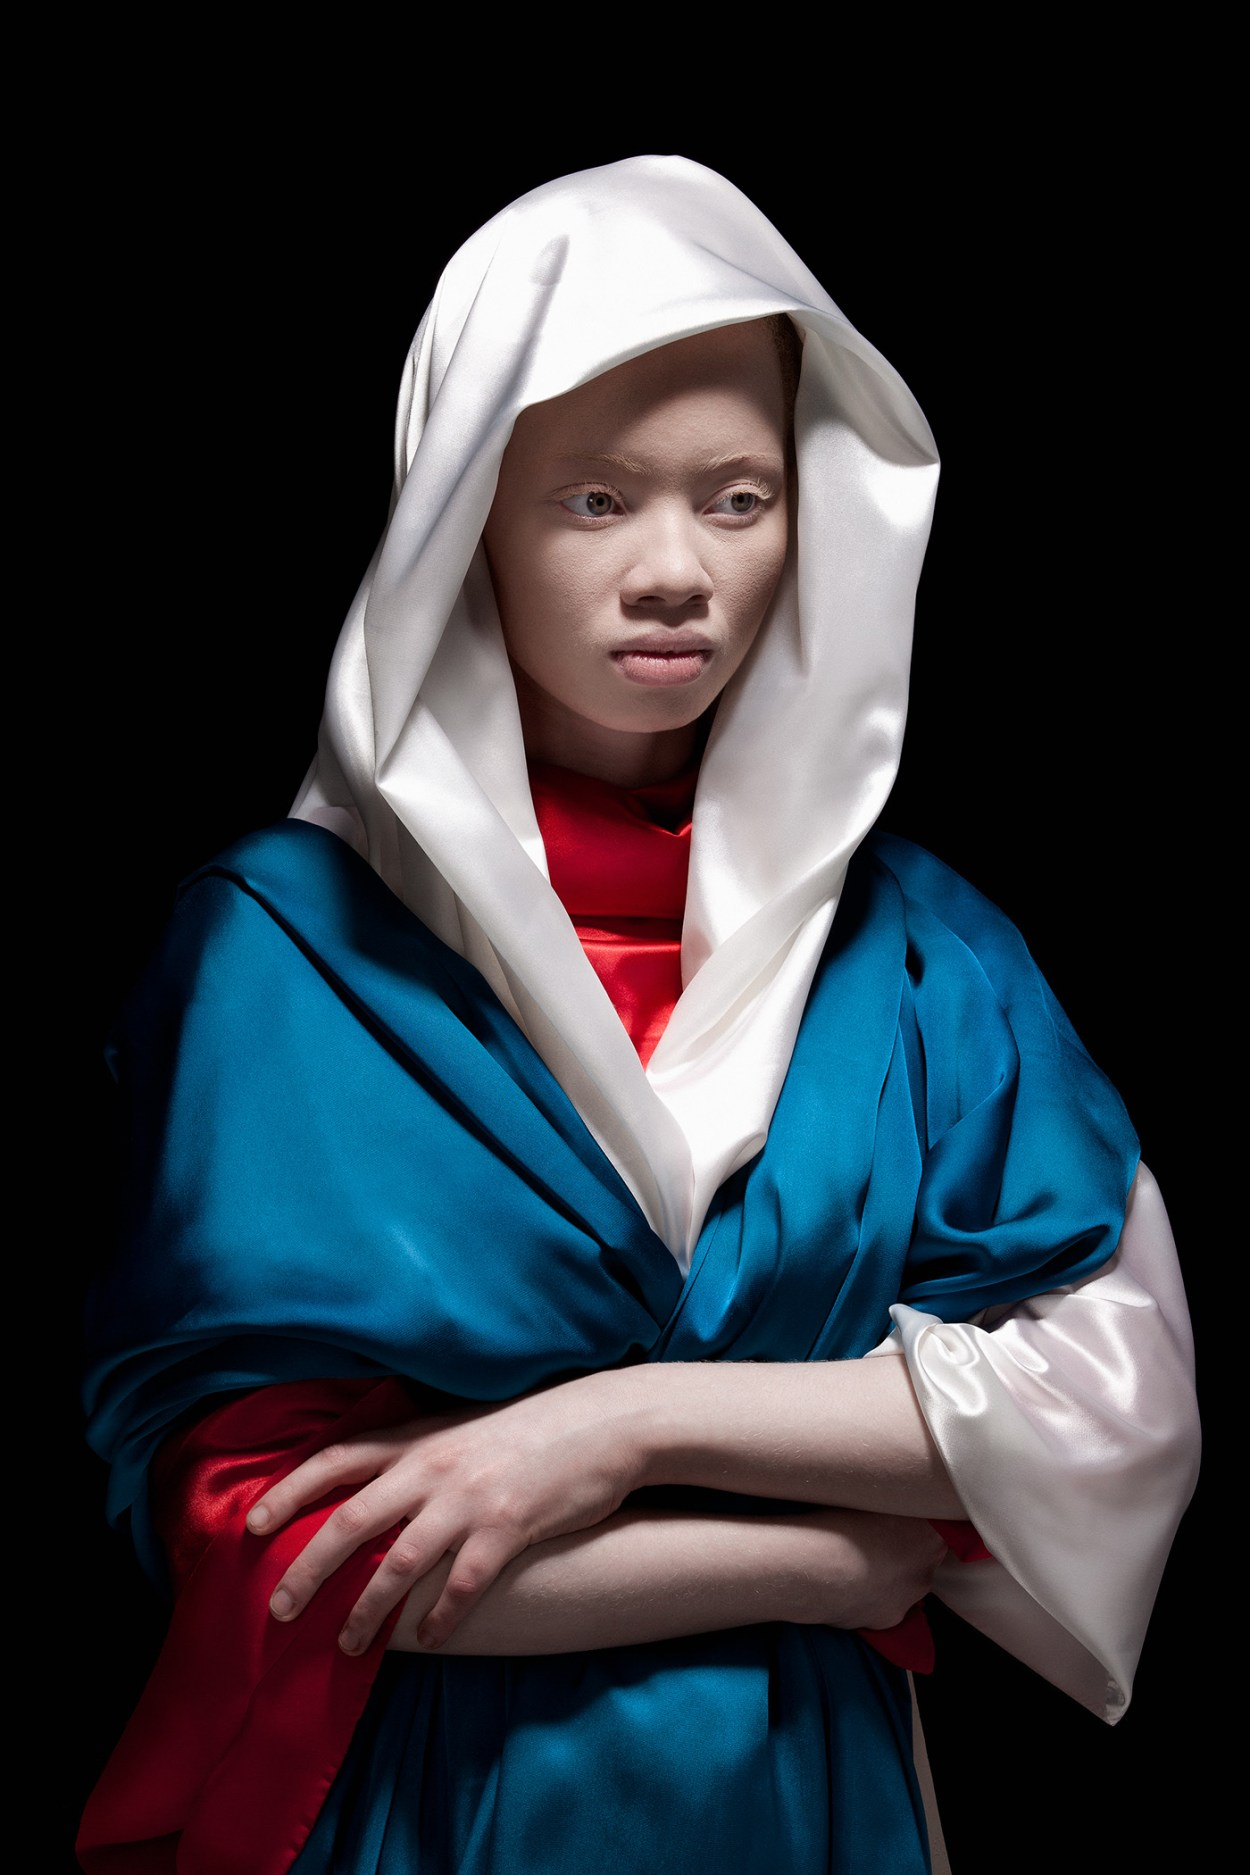 Models with Albinism